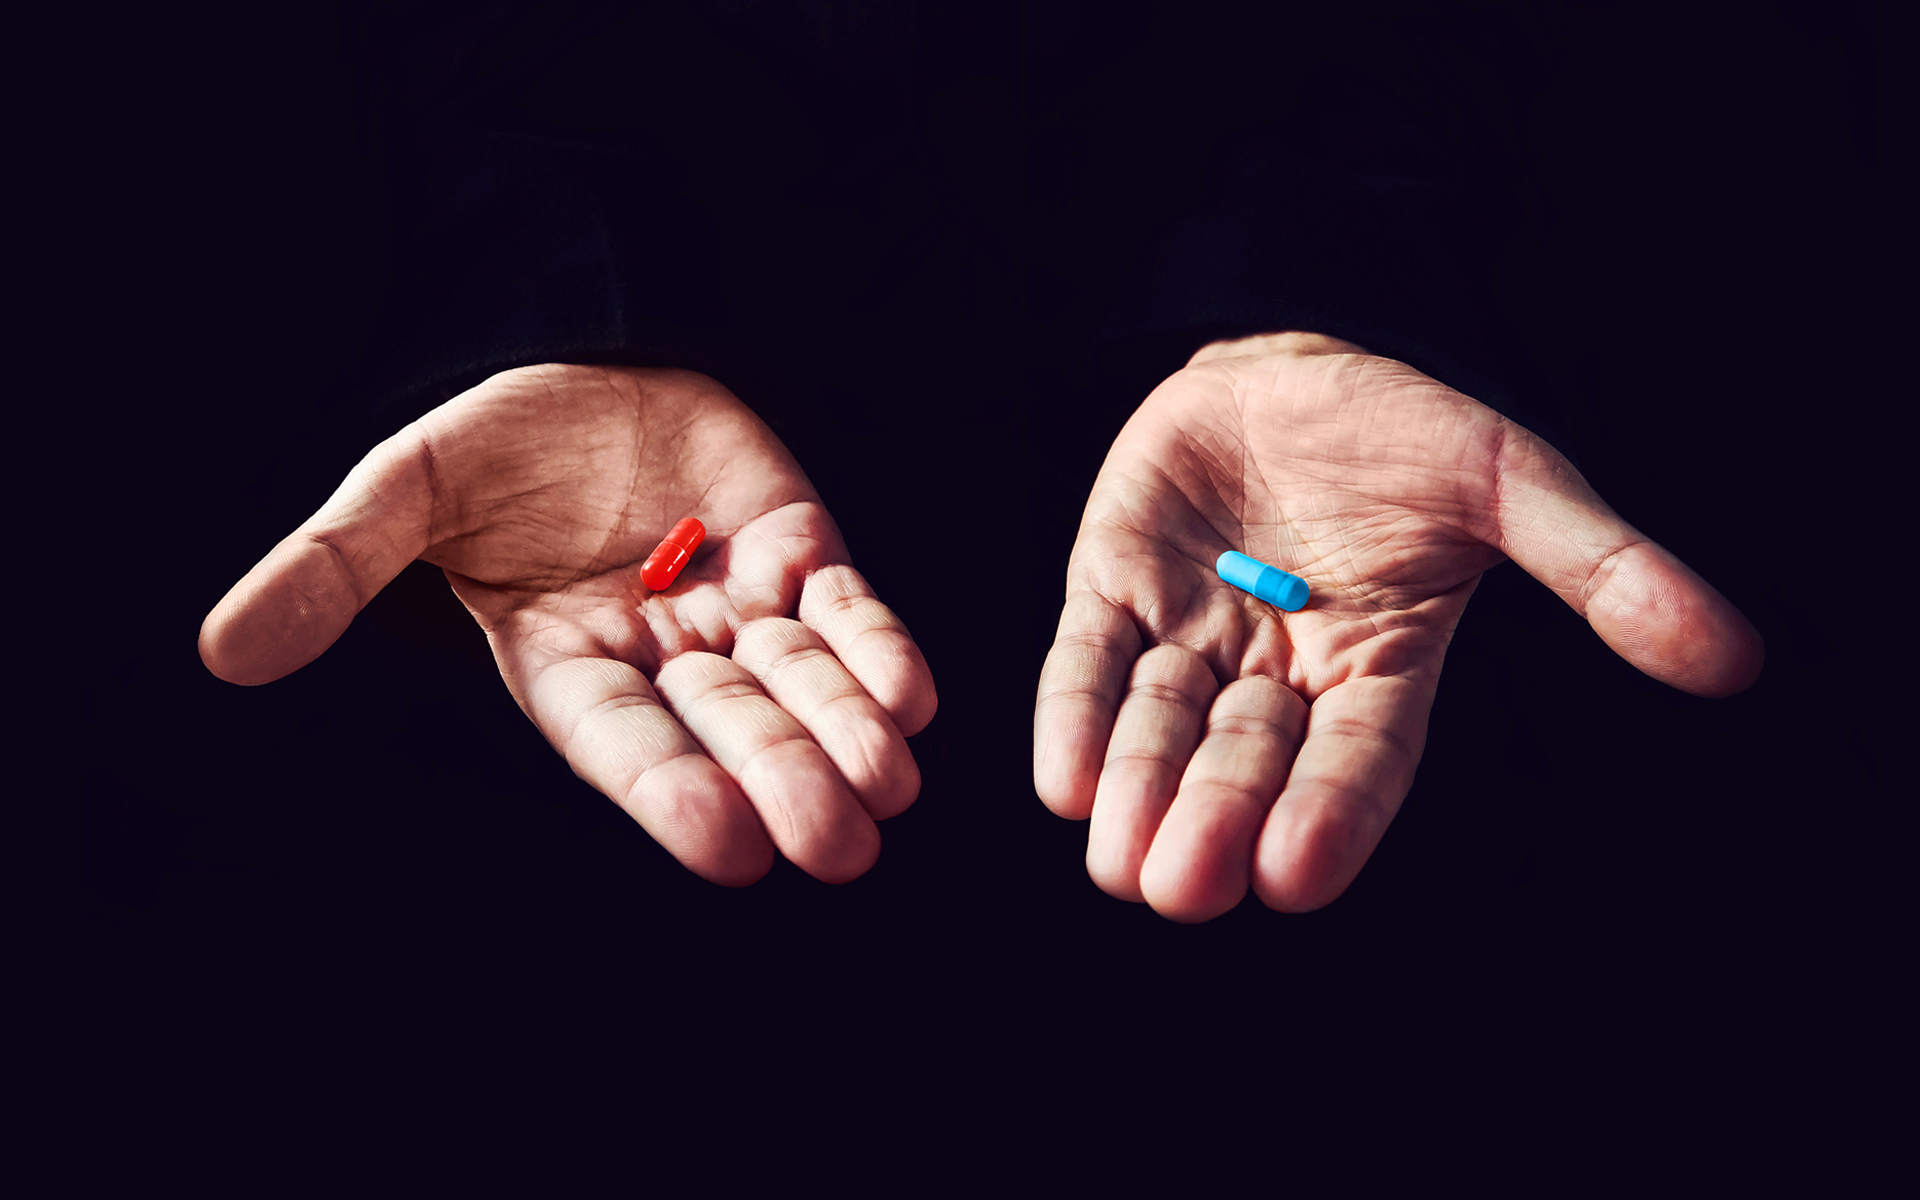 Two hands floating in a black background. The left hand with a red pill and the right hand with a blue pill.